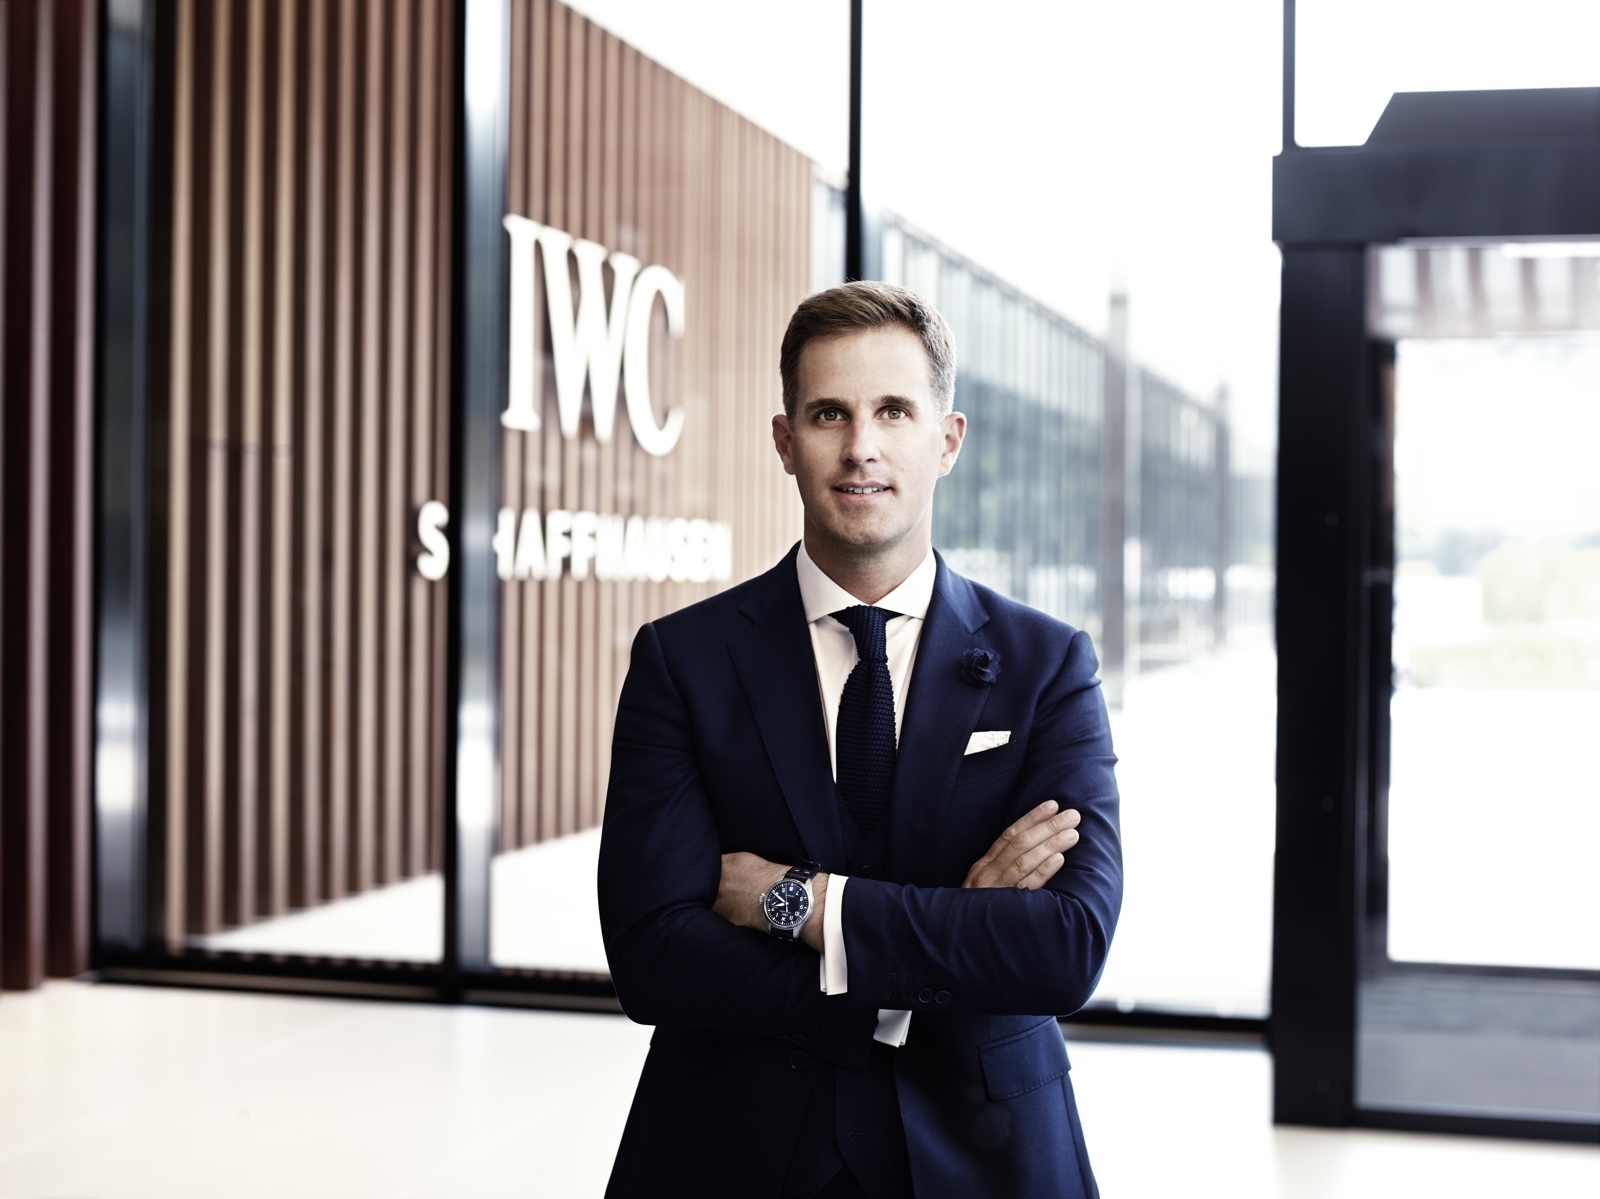 IWC-Manufakzentrum-CEO-Christoph Grainger